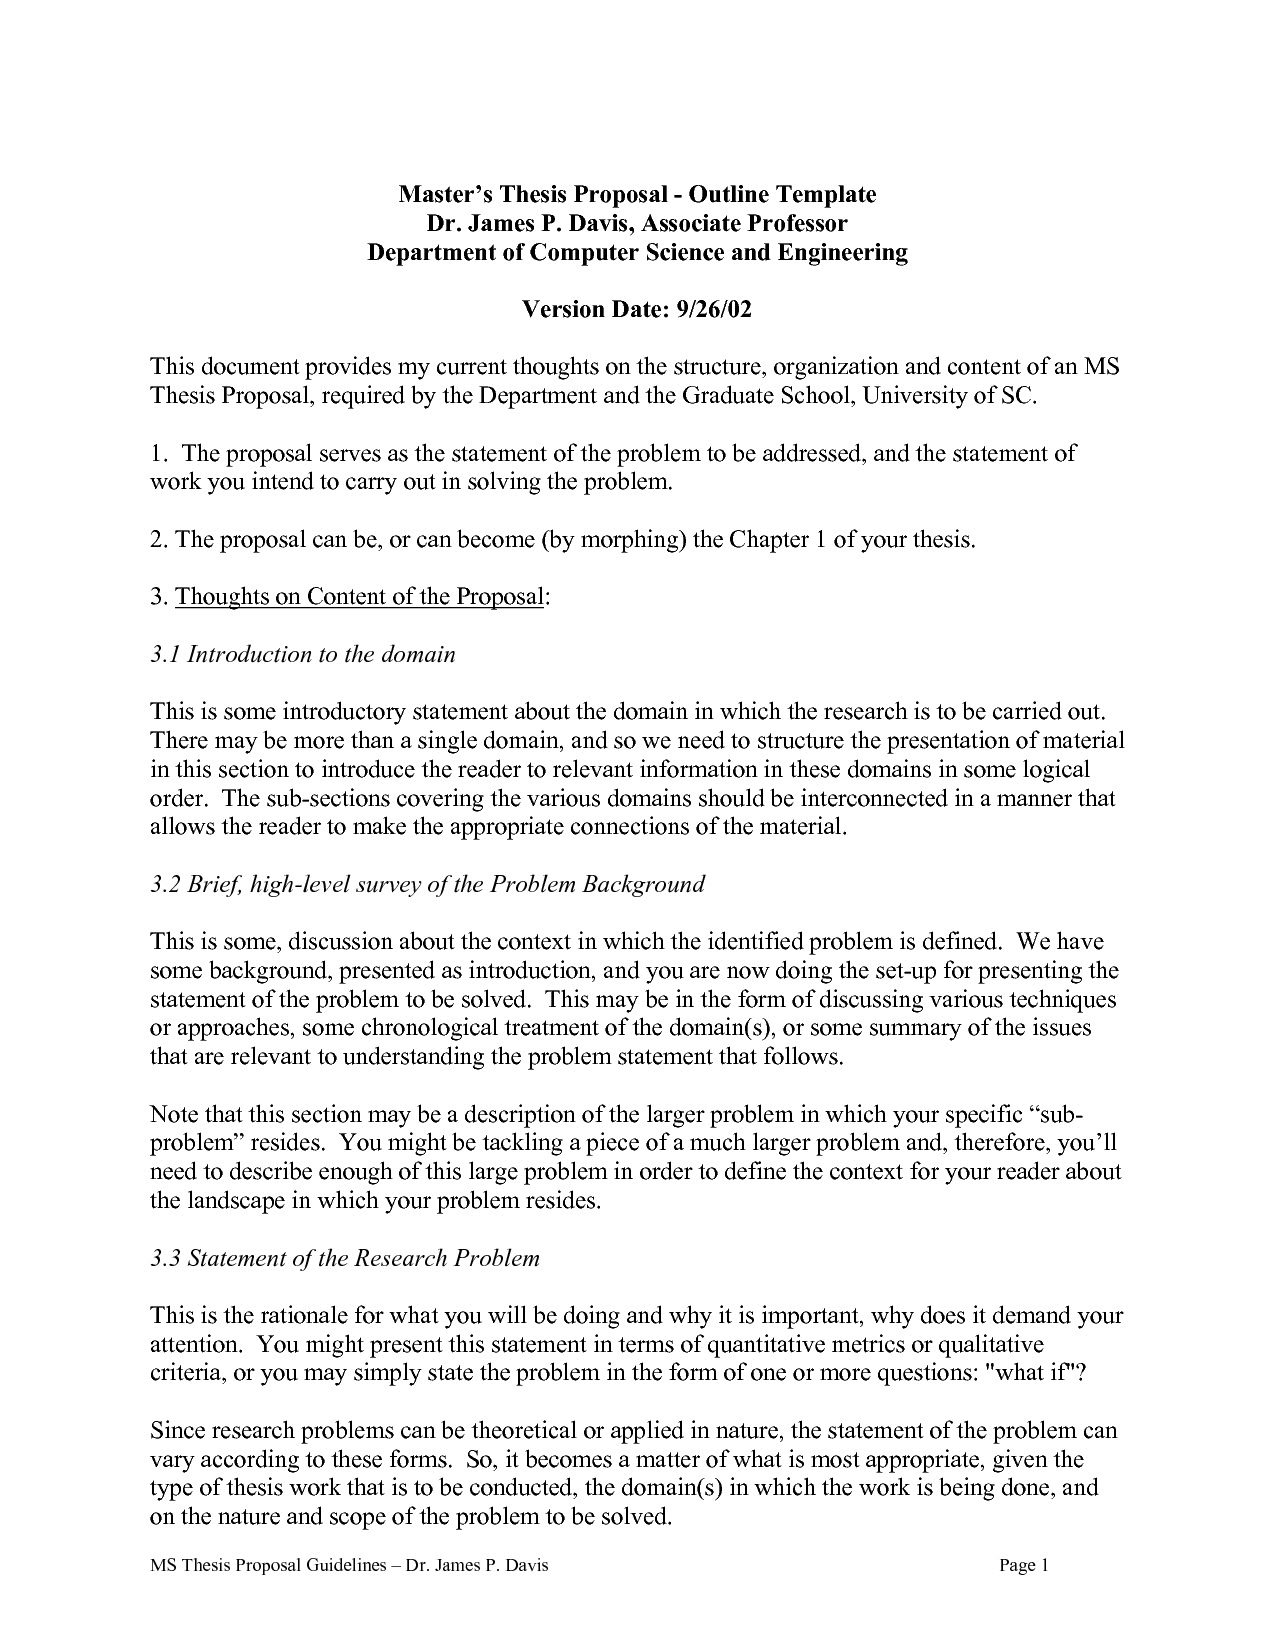 how to write a thesis statement for a proposal essay